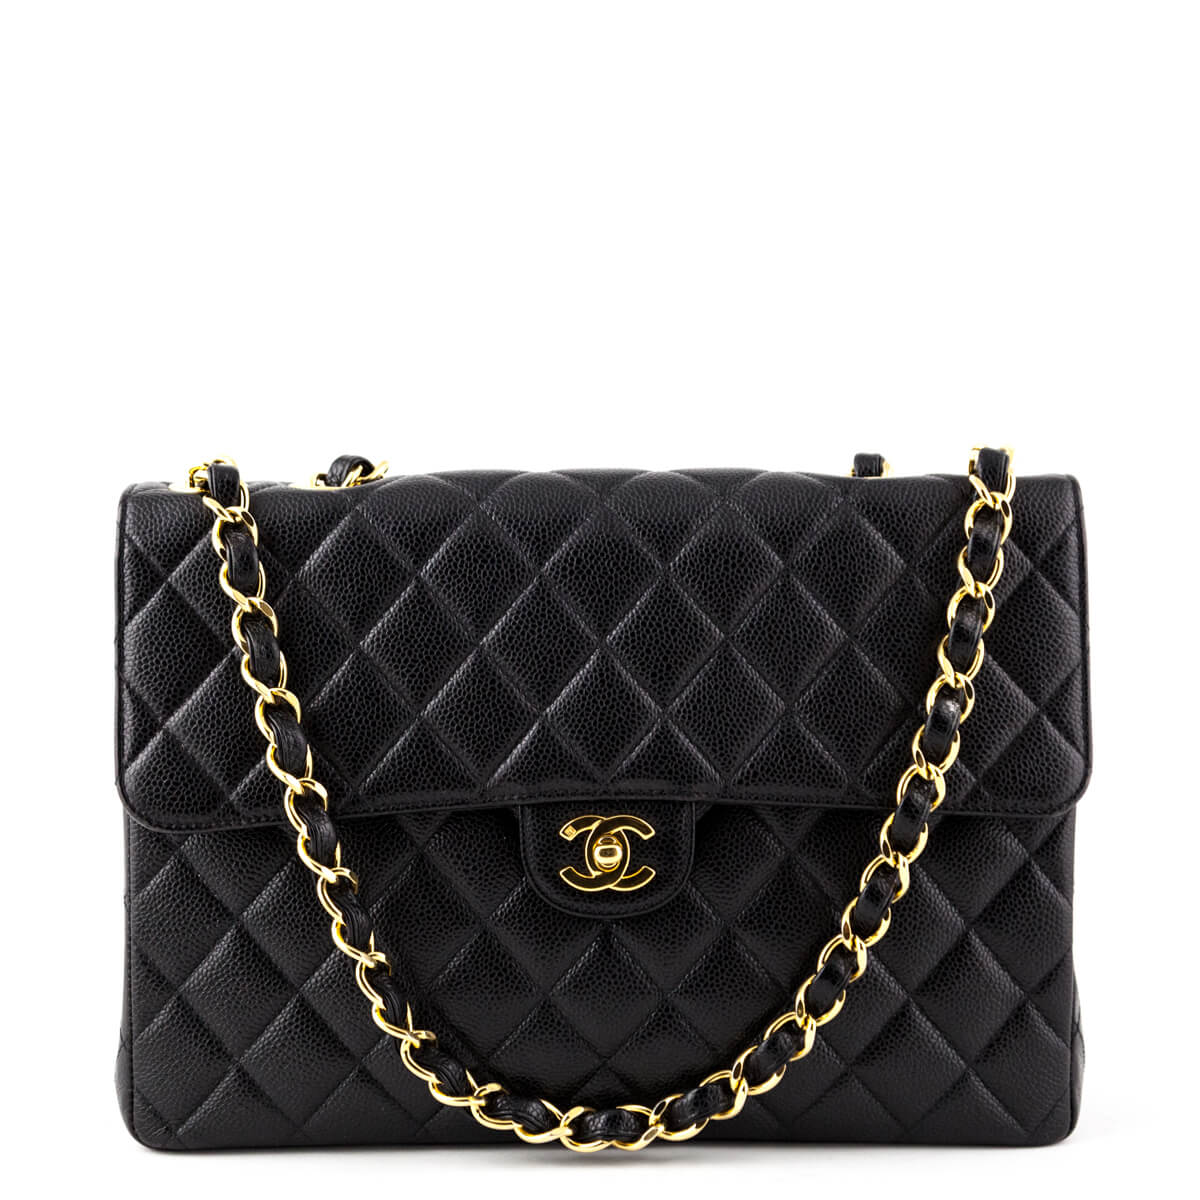 4c3849c65baf1b Chanel Vintage Black Caviar Jumbo Classic Flap Bag - LOVE that BAG - Preowned  Authentic Designer ...